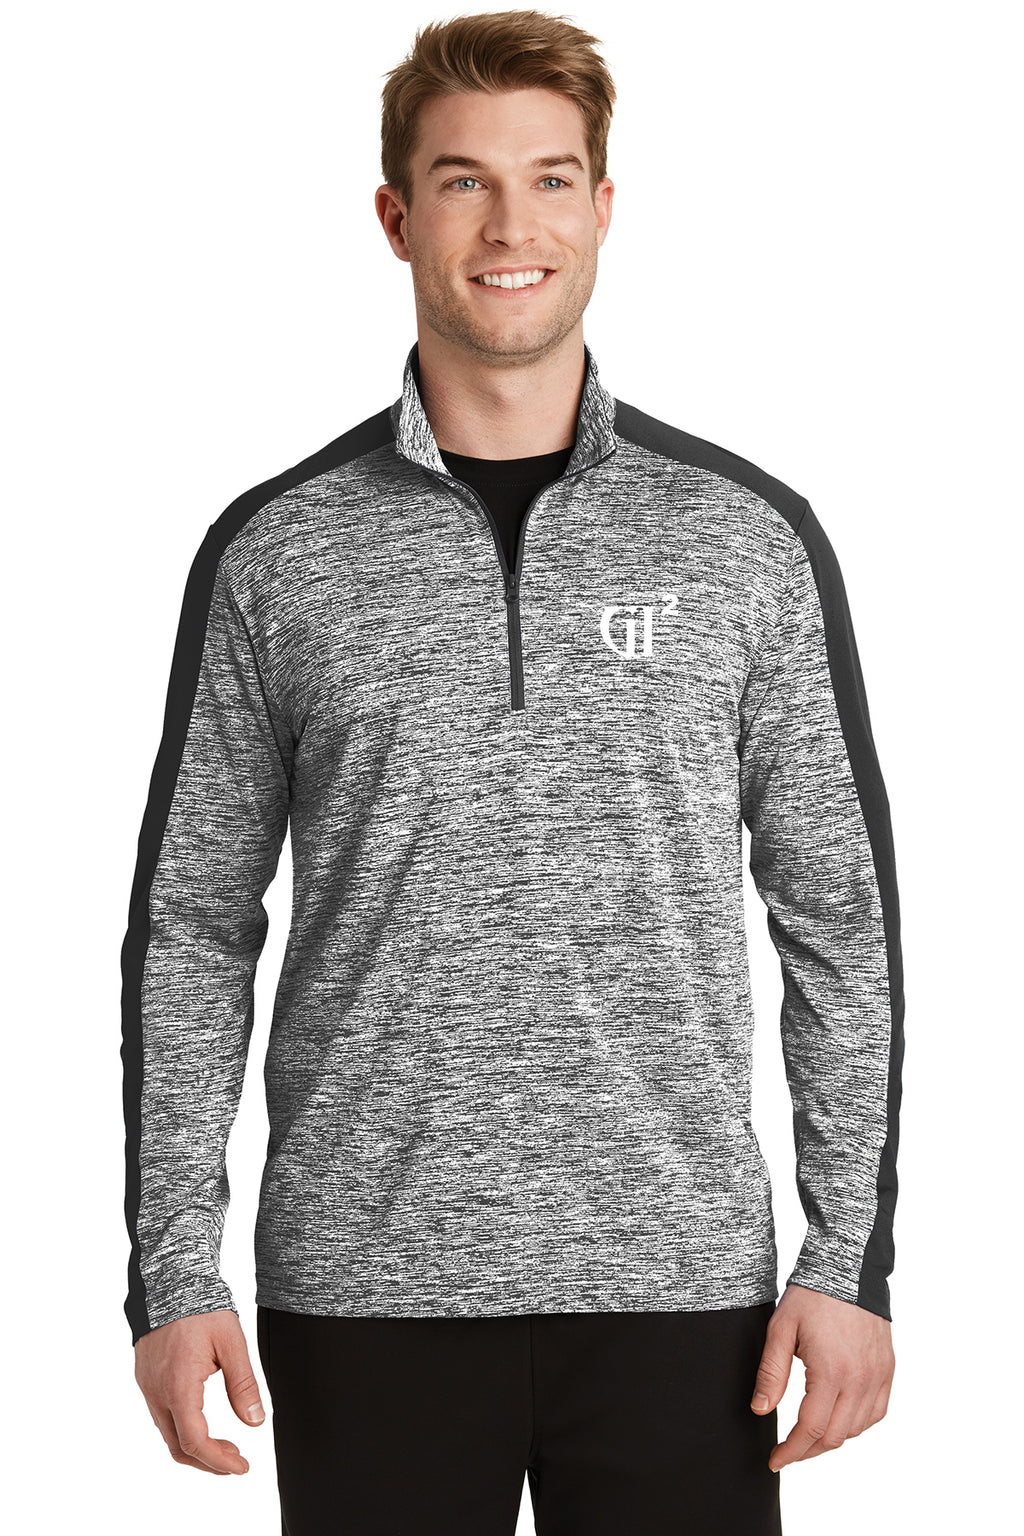 Mens 1/4 zip Heather Block Pull over - GET IT IN Apparel